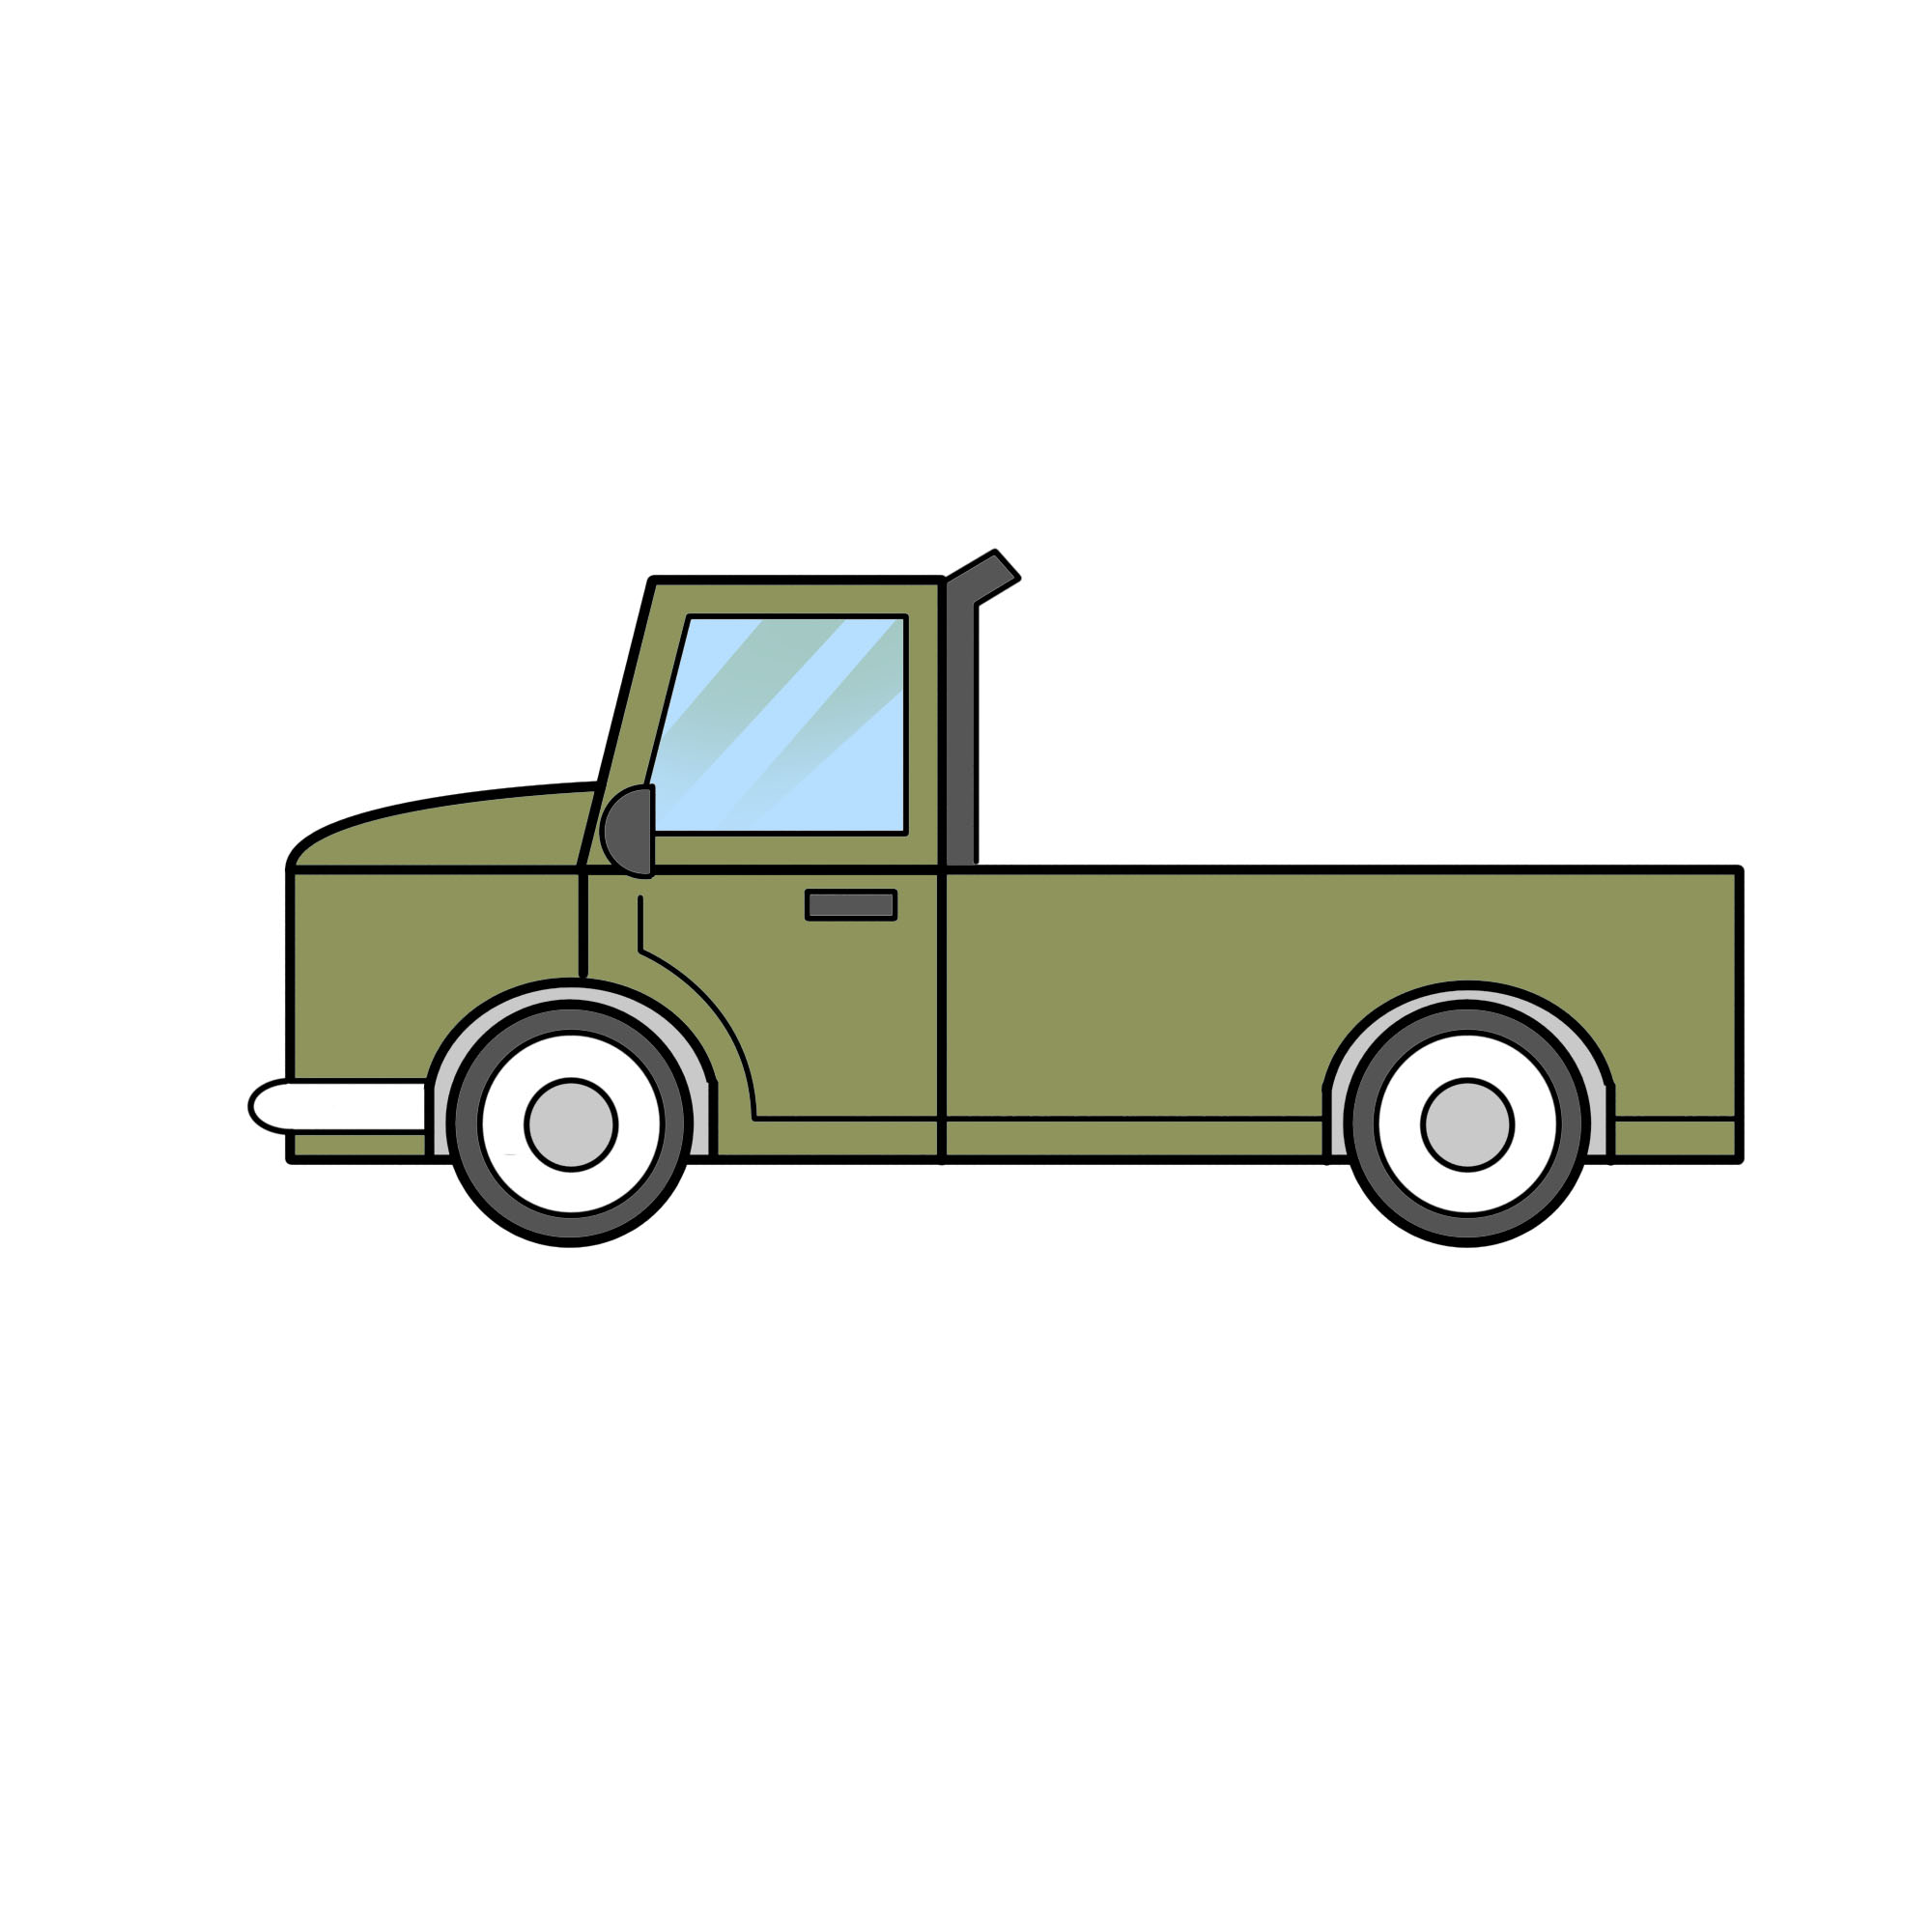 Drawn truck Easy Draw 2 to wikiHow